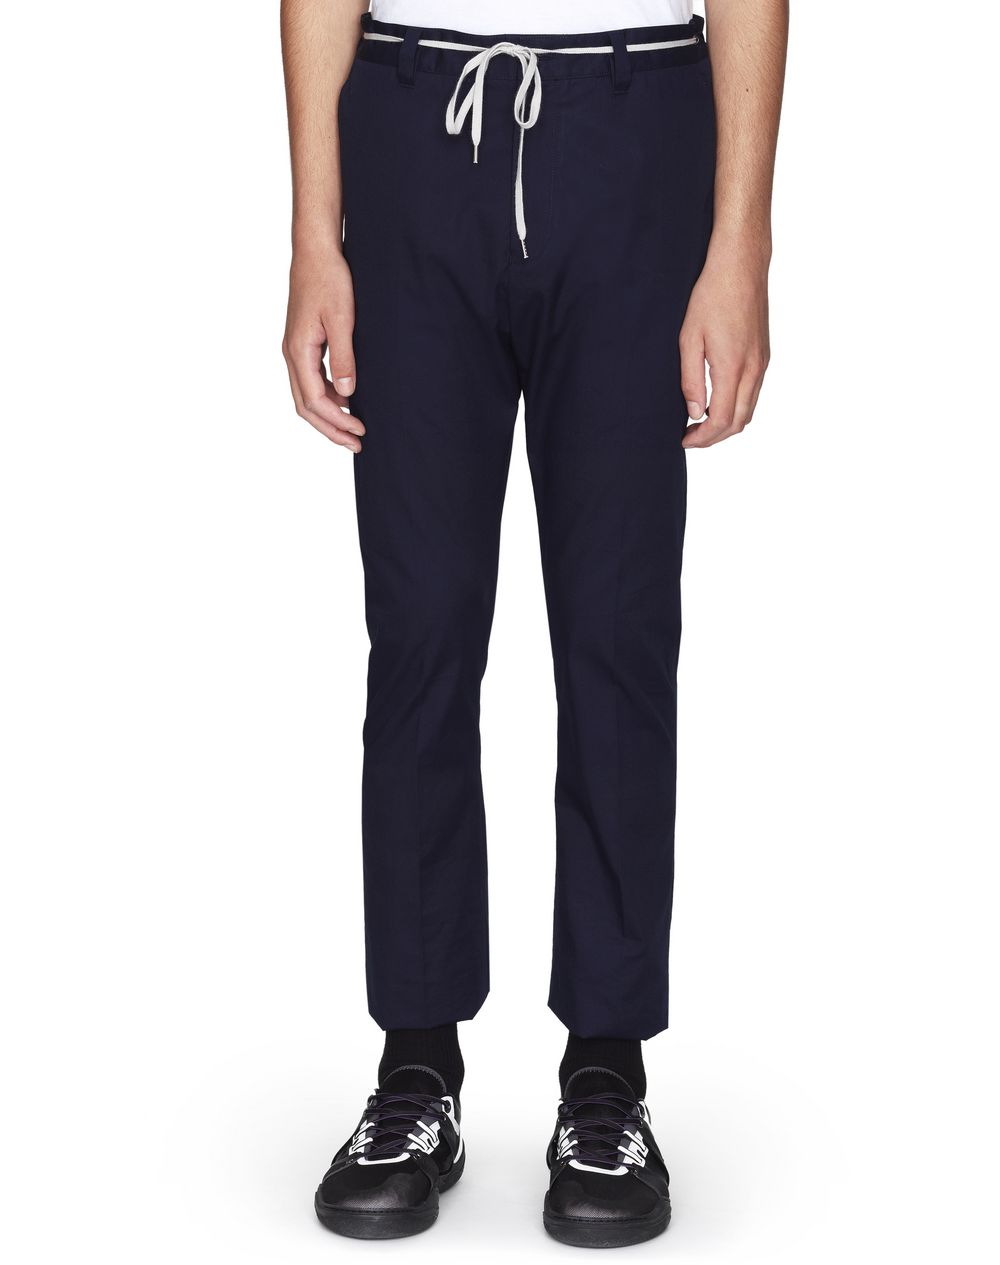 DARK BLUE FITTED DRAWSTRING PANTS - Lanvin